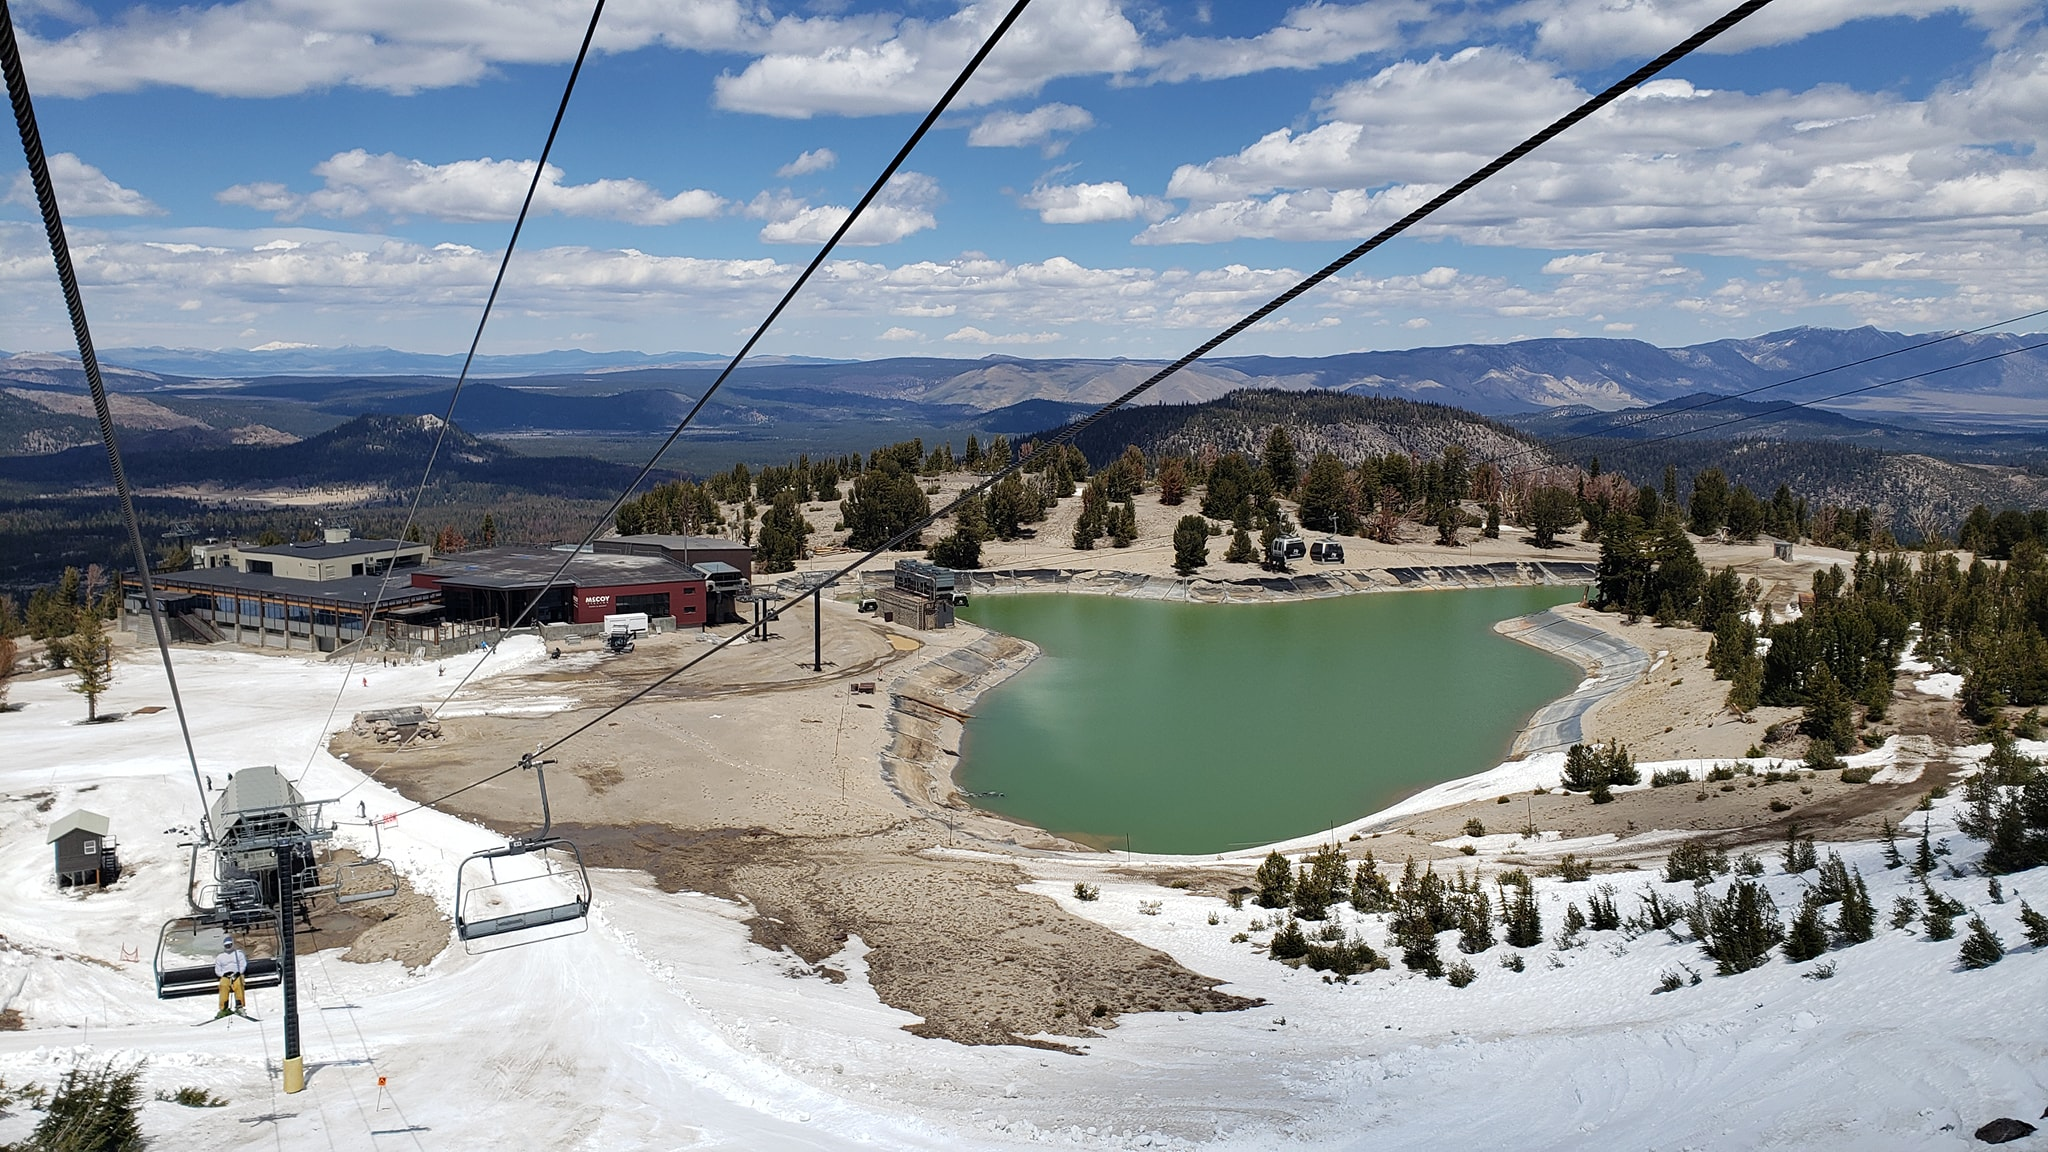 The Morning Report Wednesday May 26th – Mammoth Lakes, California